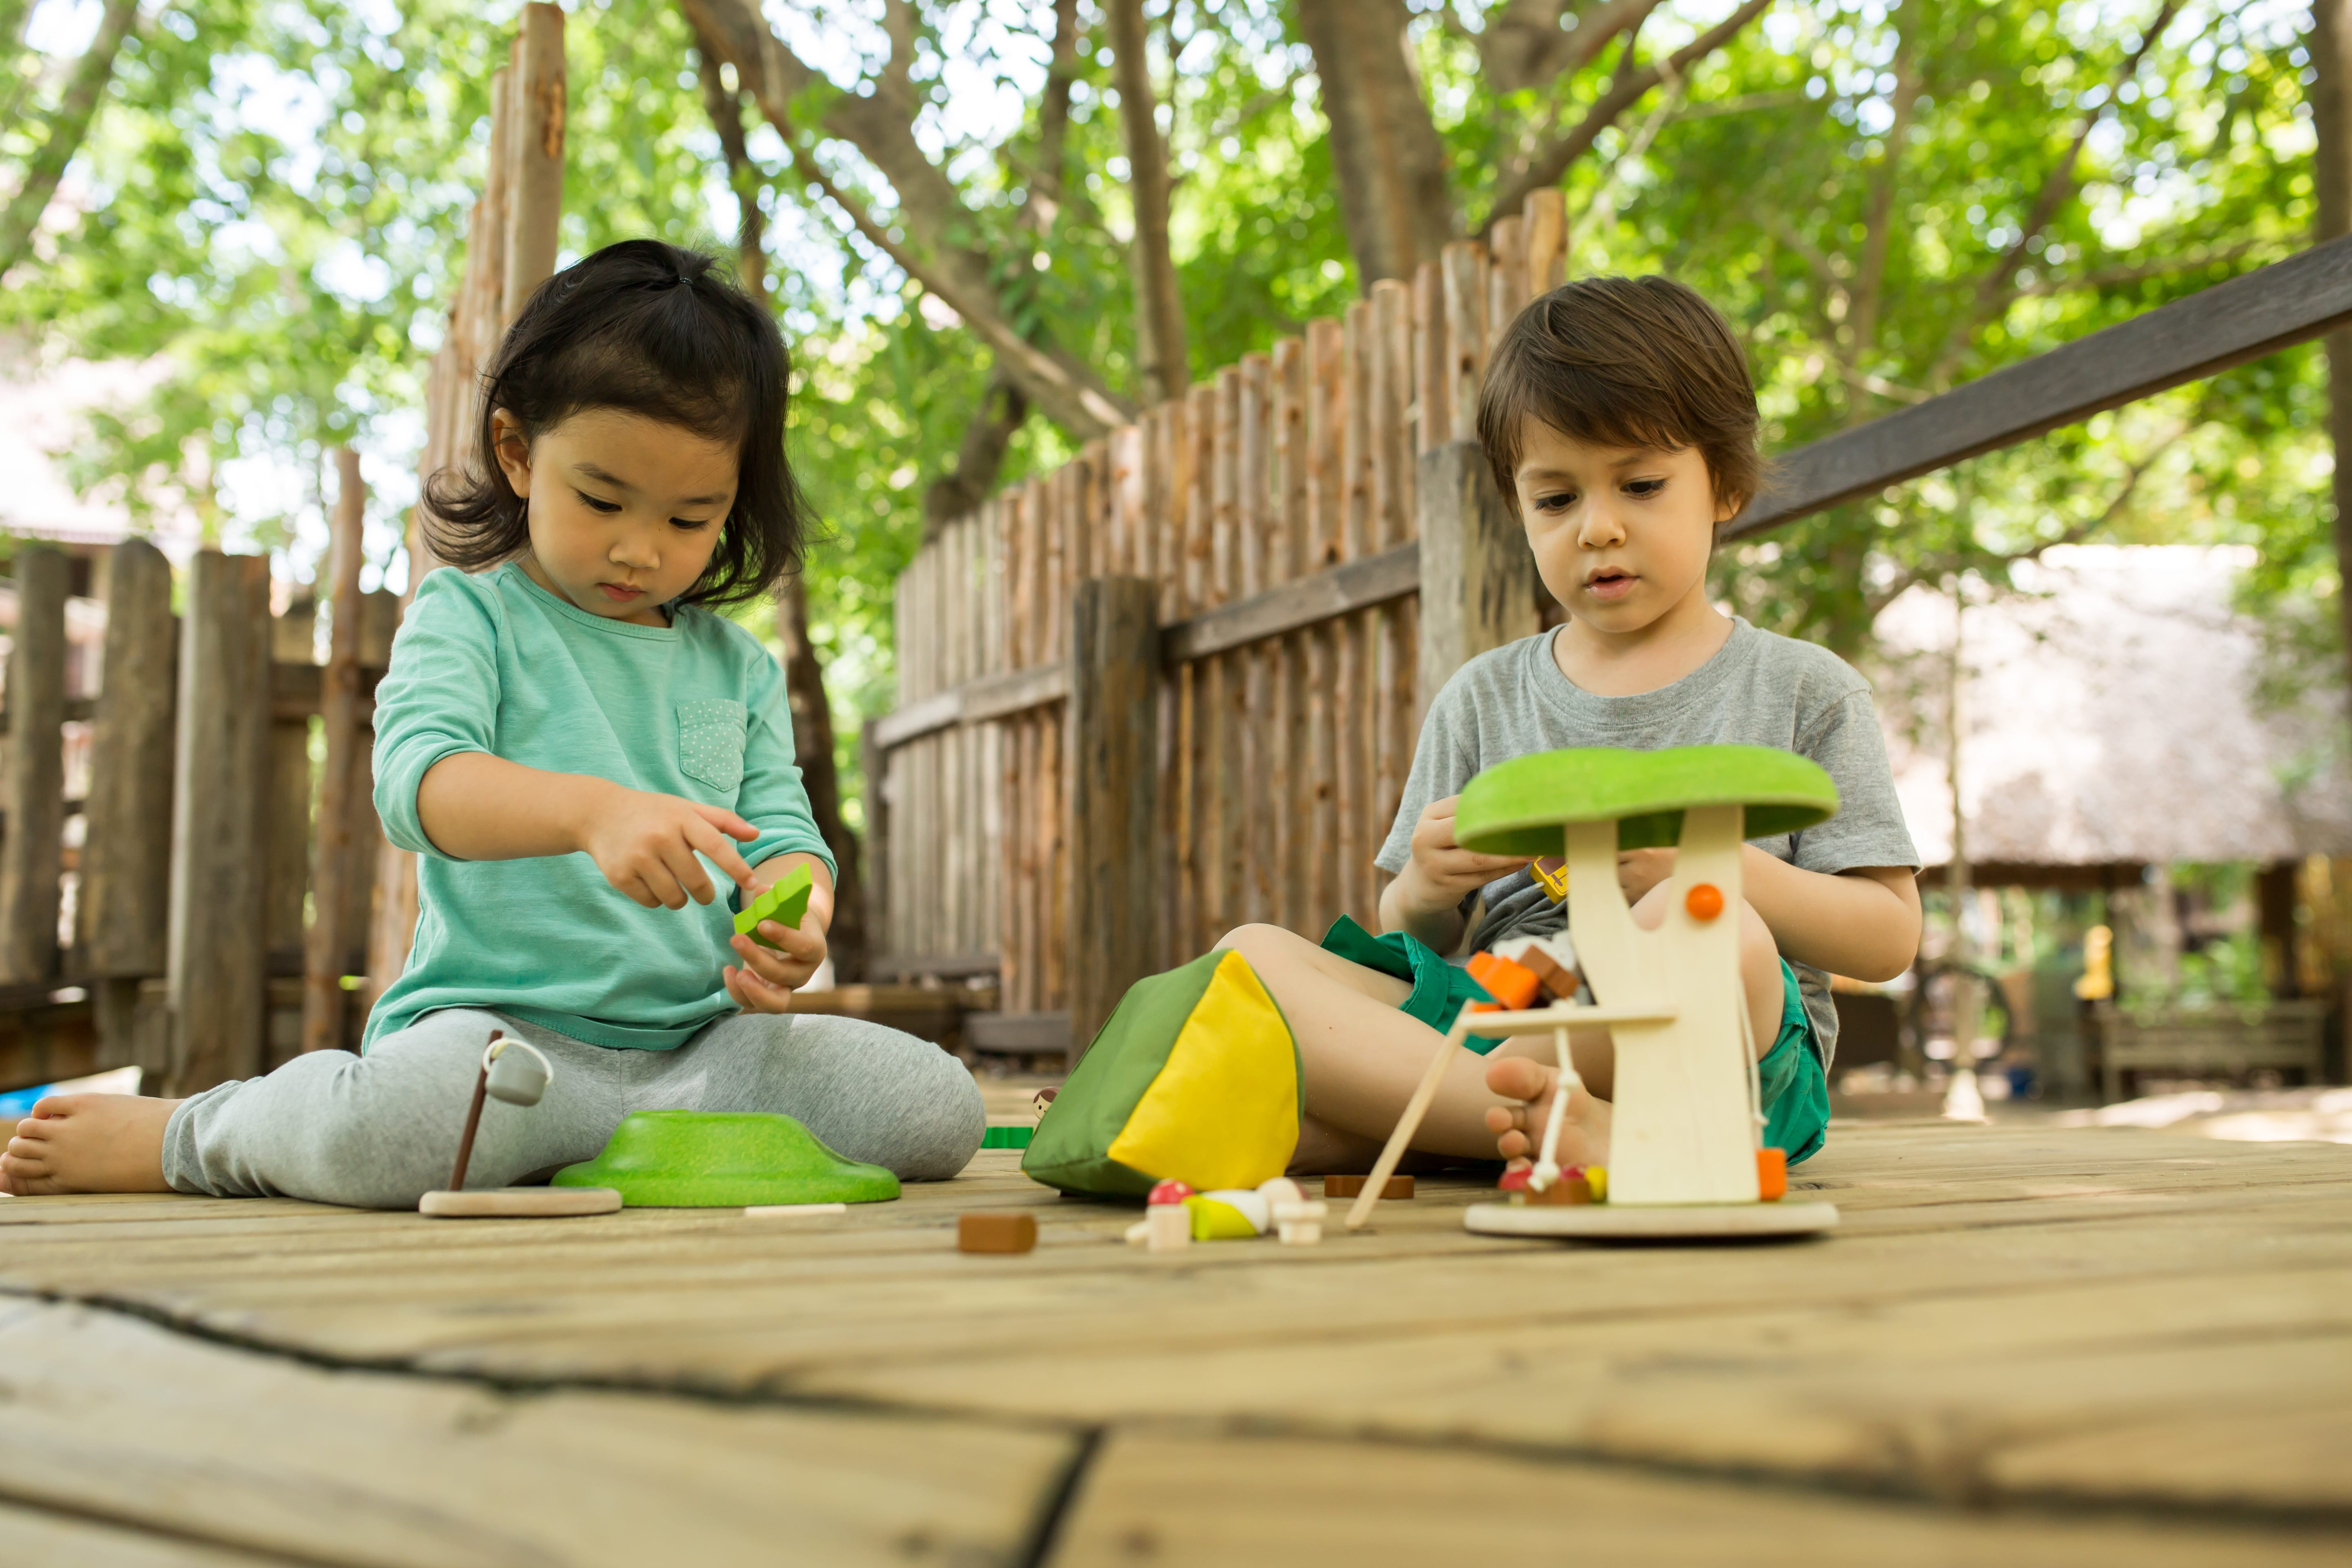 6626_PlanToys_TREE_HOUSE_Pretend_Play_Imagination_Coordination_Language_and_Communications_Social_Fine_Motor_3yrs_Wooden_toys_Education_toys_Safety_Toys_Non-toxic_0.jpg